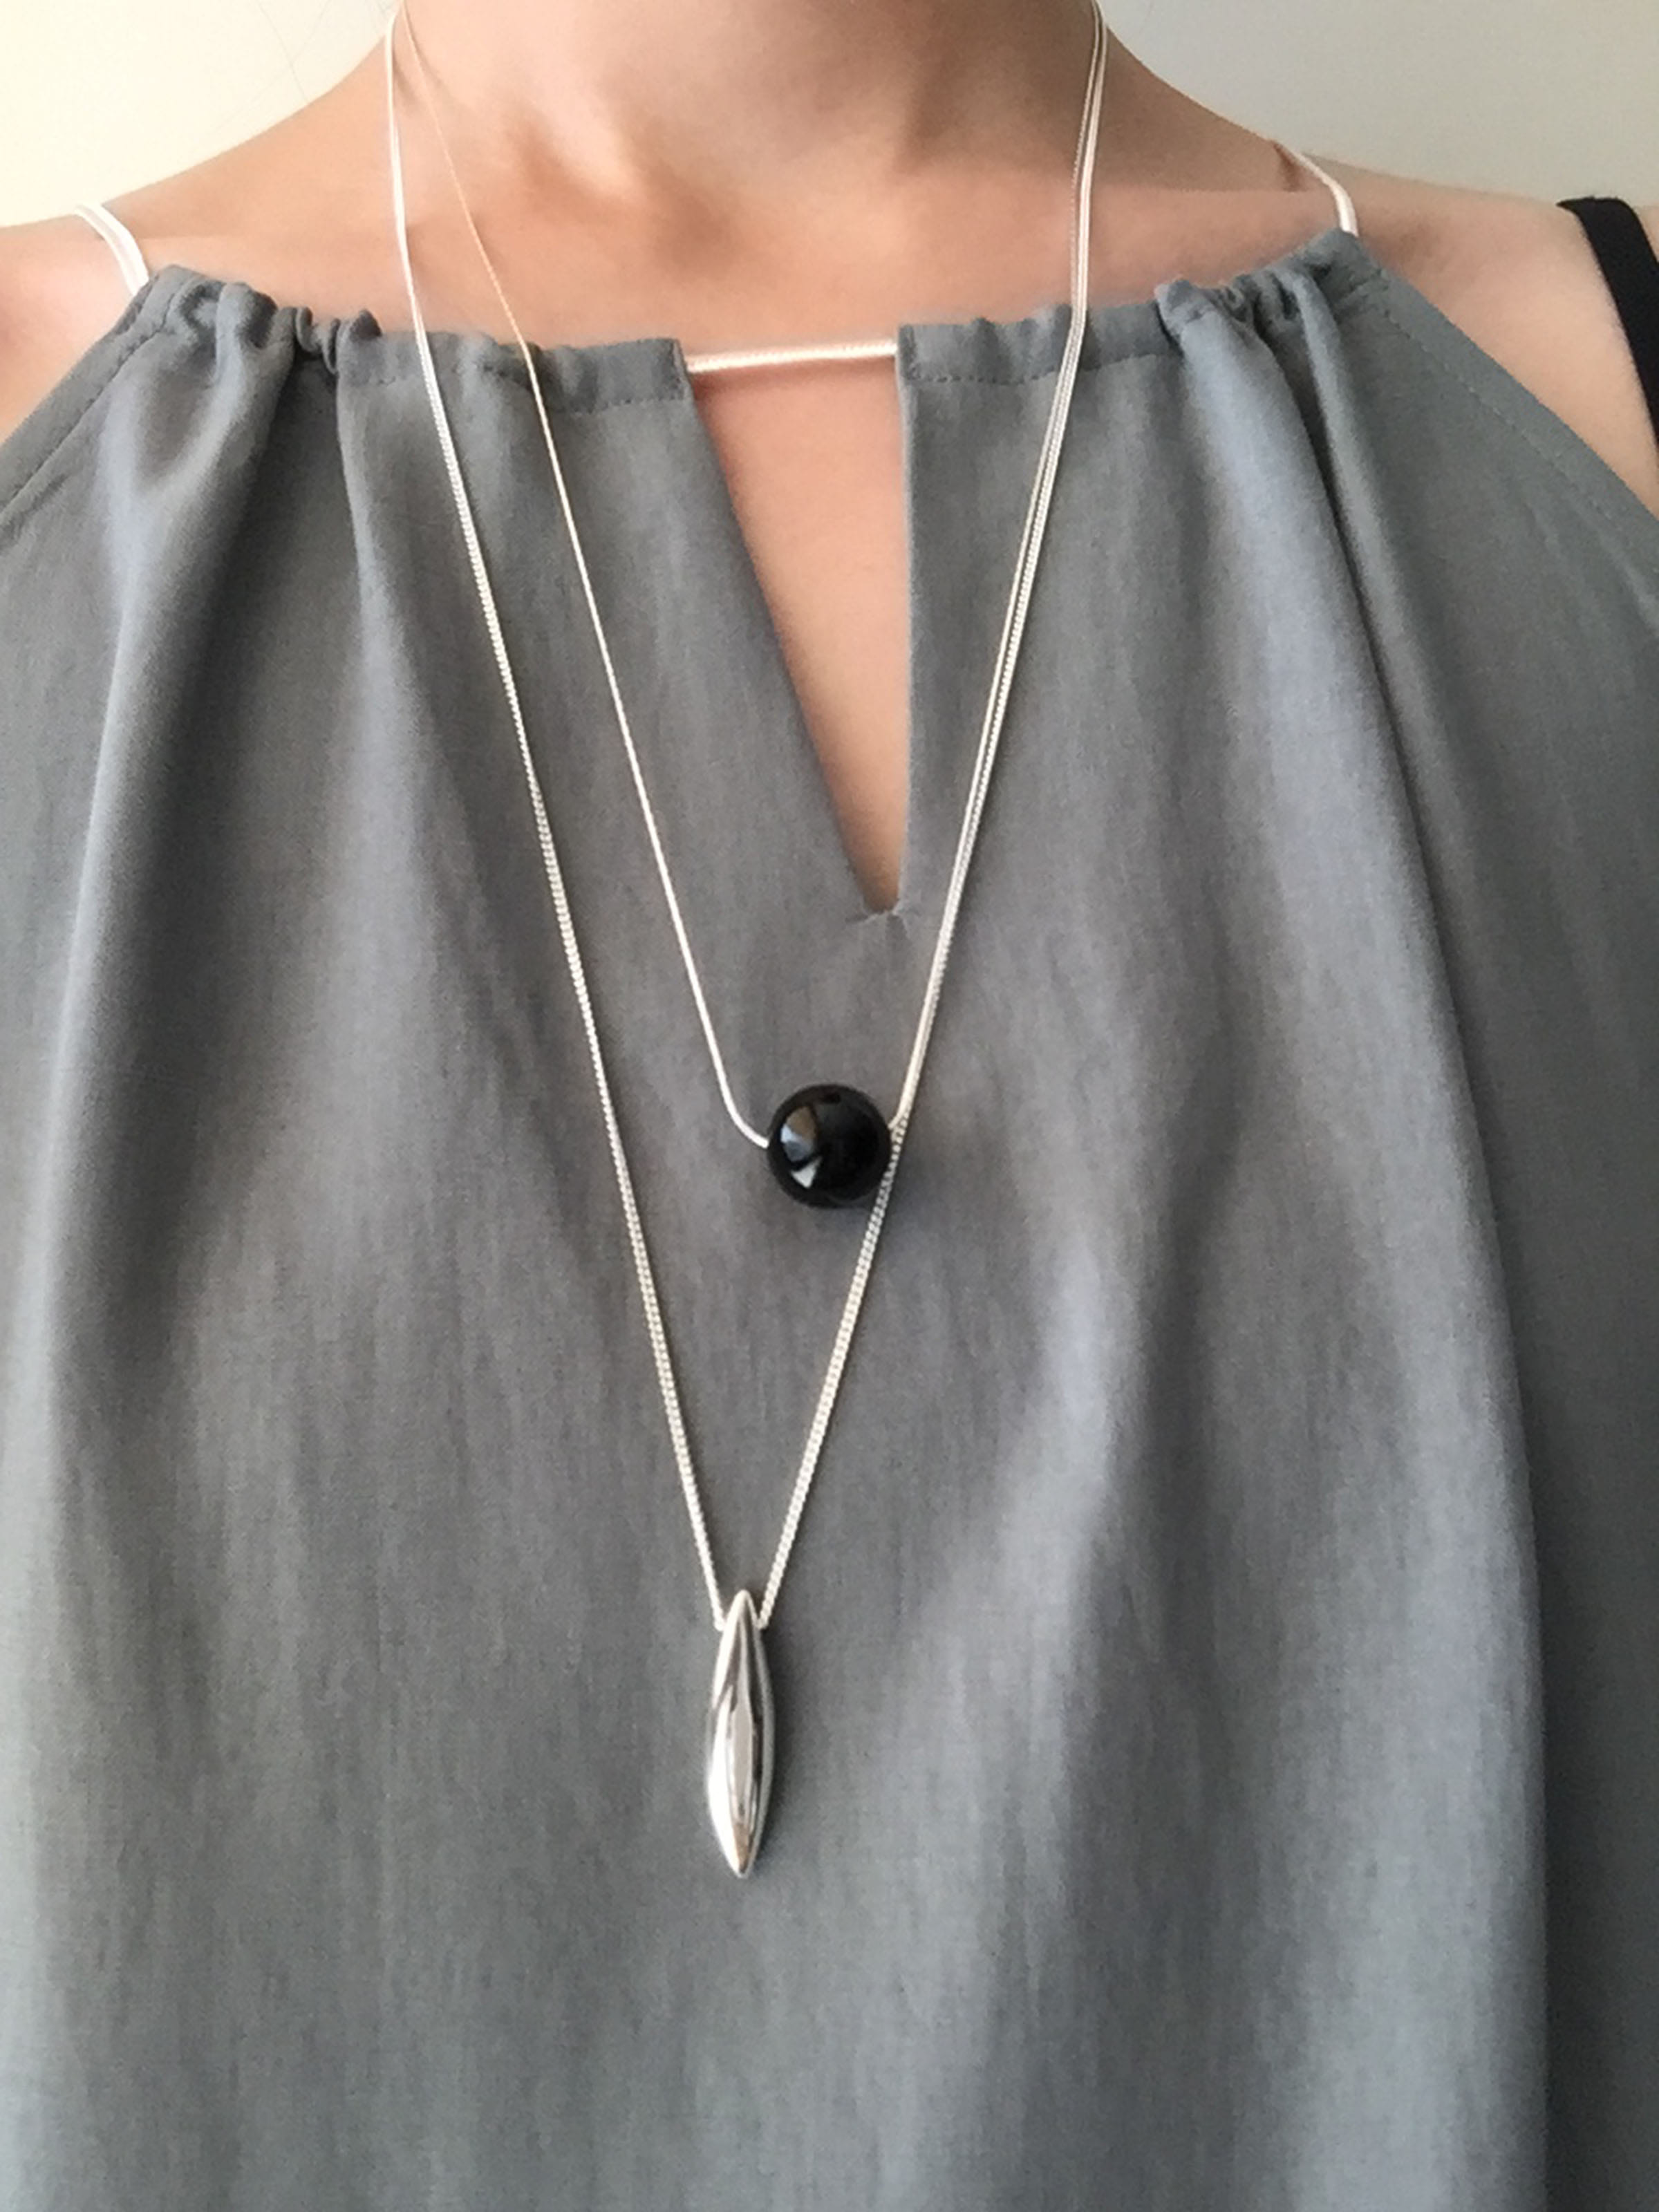 # 032 Black Onyx Necklace